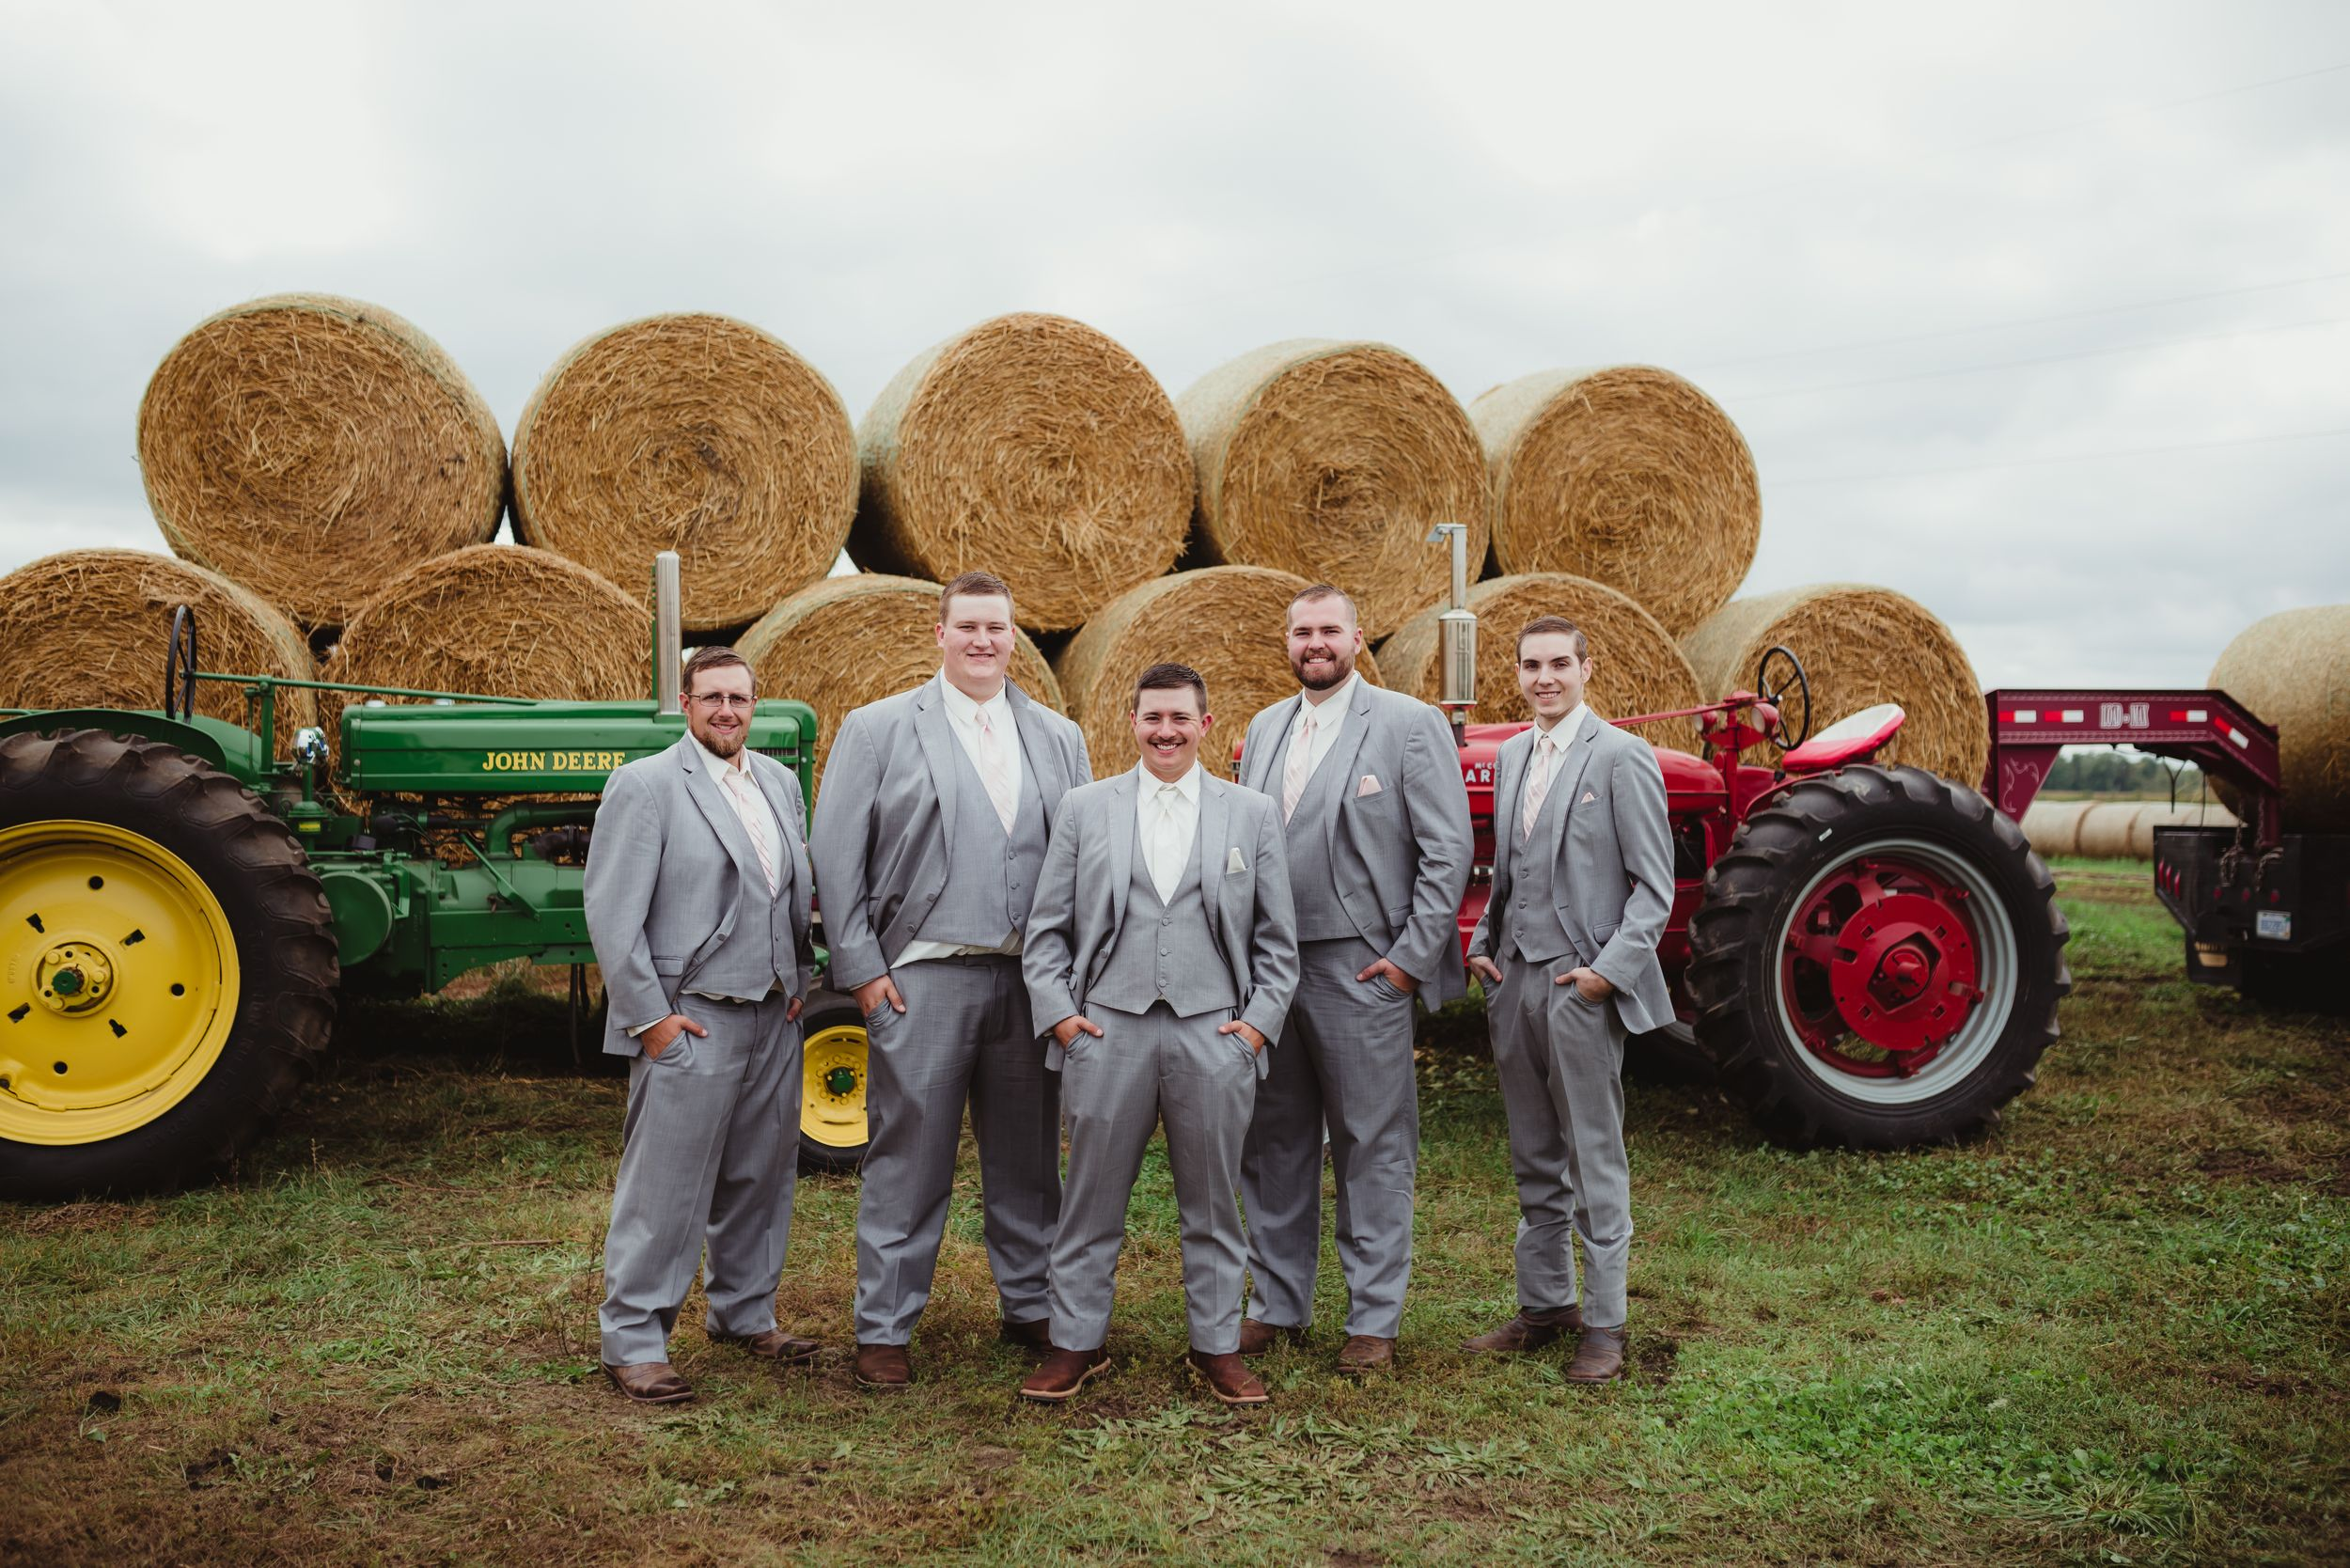 Groom and groomsmen in front of a tractor and rolls of hay. They wear light grey suits.